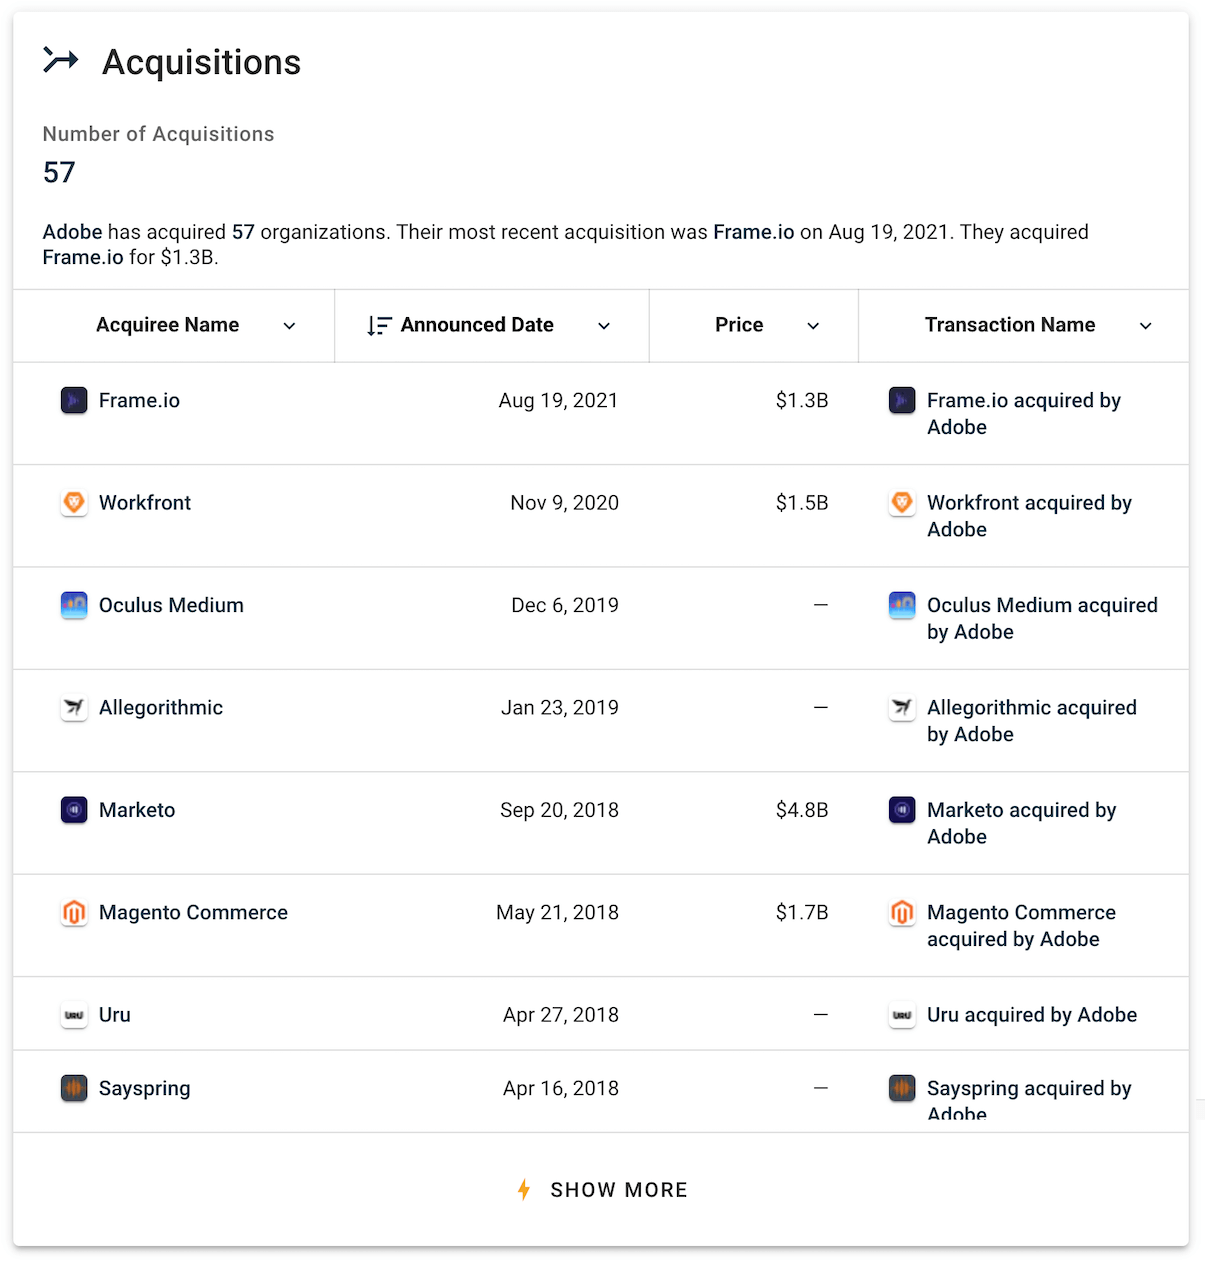 Adobe Acquisitions